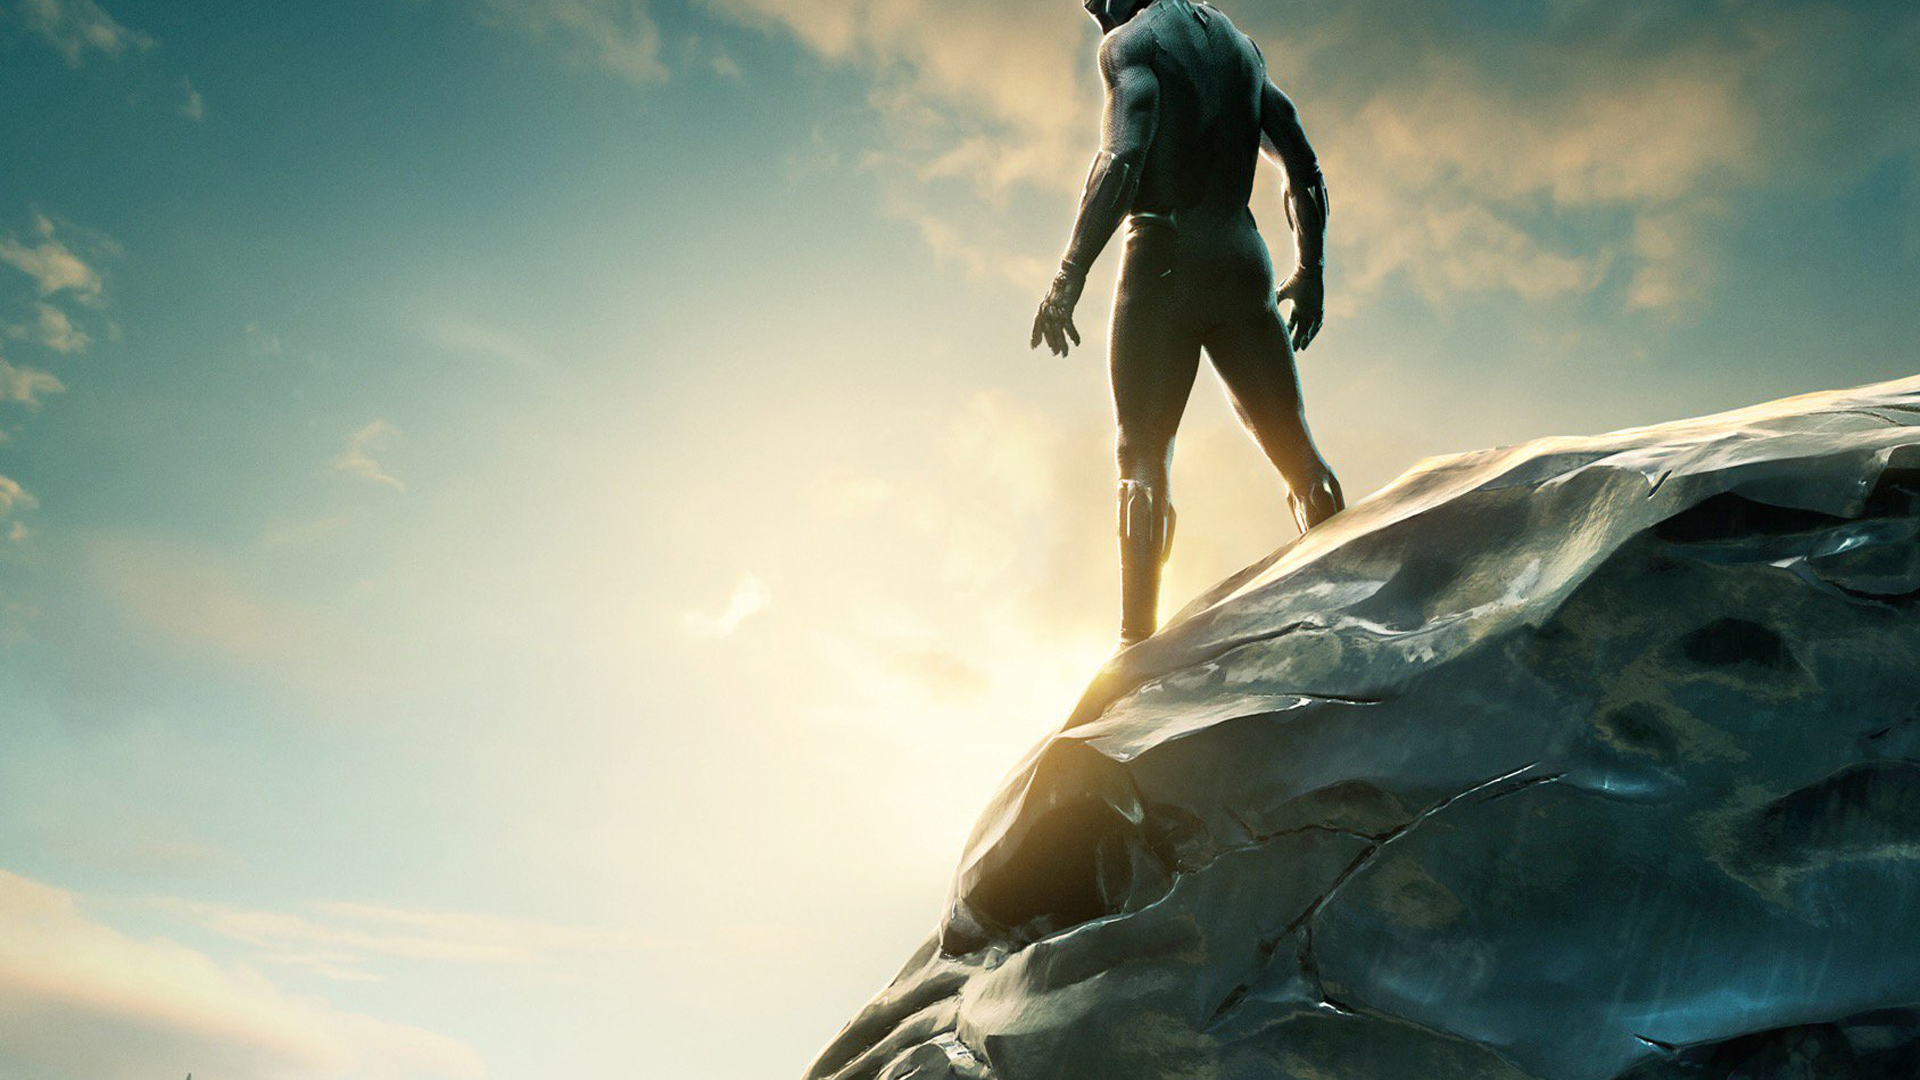 1920x1080 Black Panther 2018 Movie Still 1080p Laptop Full